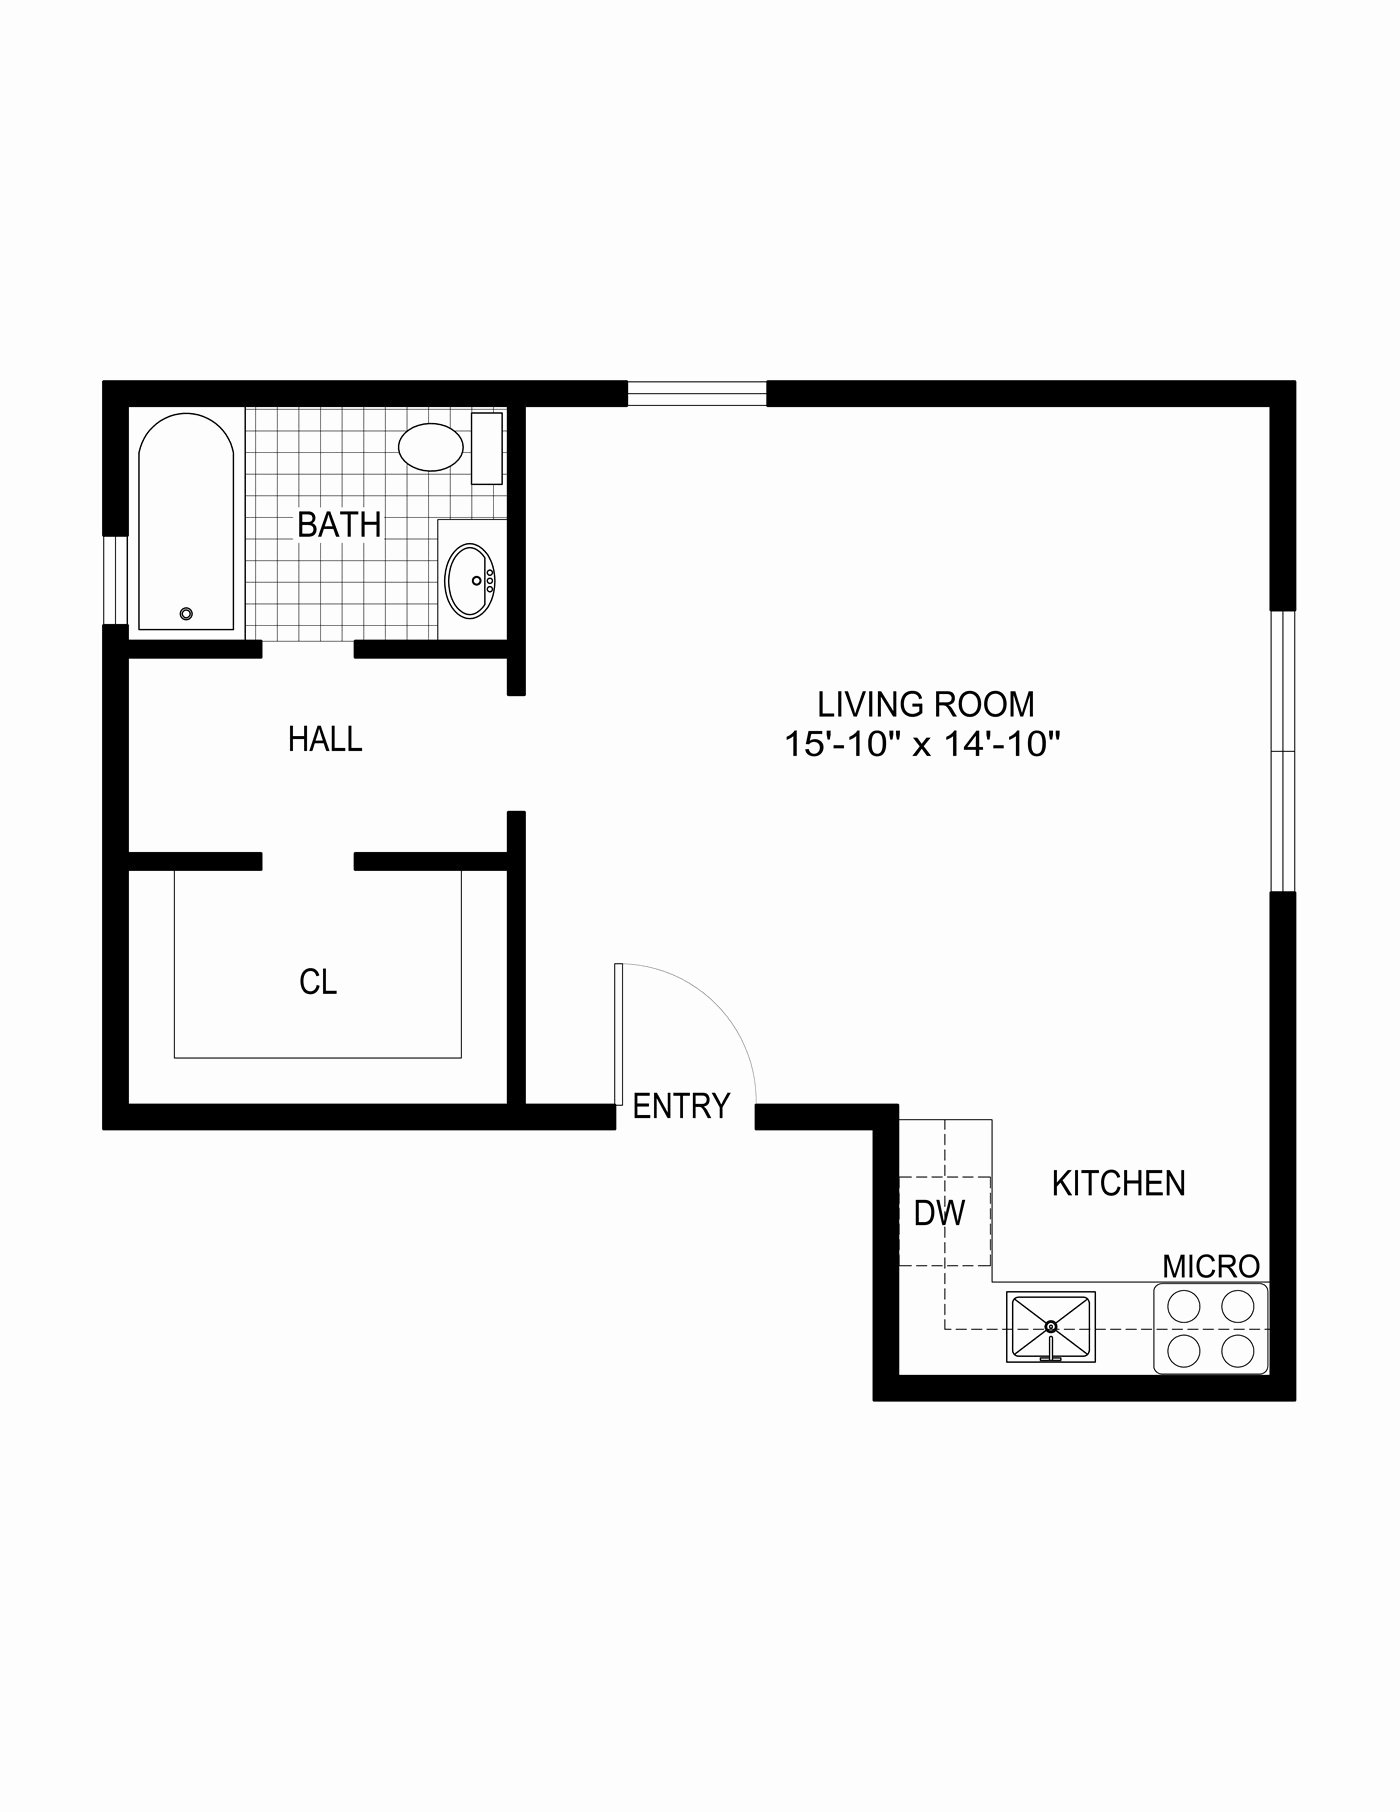 Floor Plan Templates Free Fresh Creative Luxury Fice Space for Rent Floor Plans How to